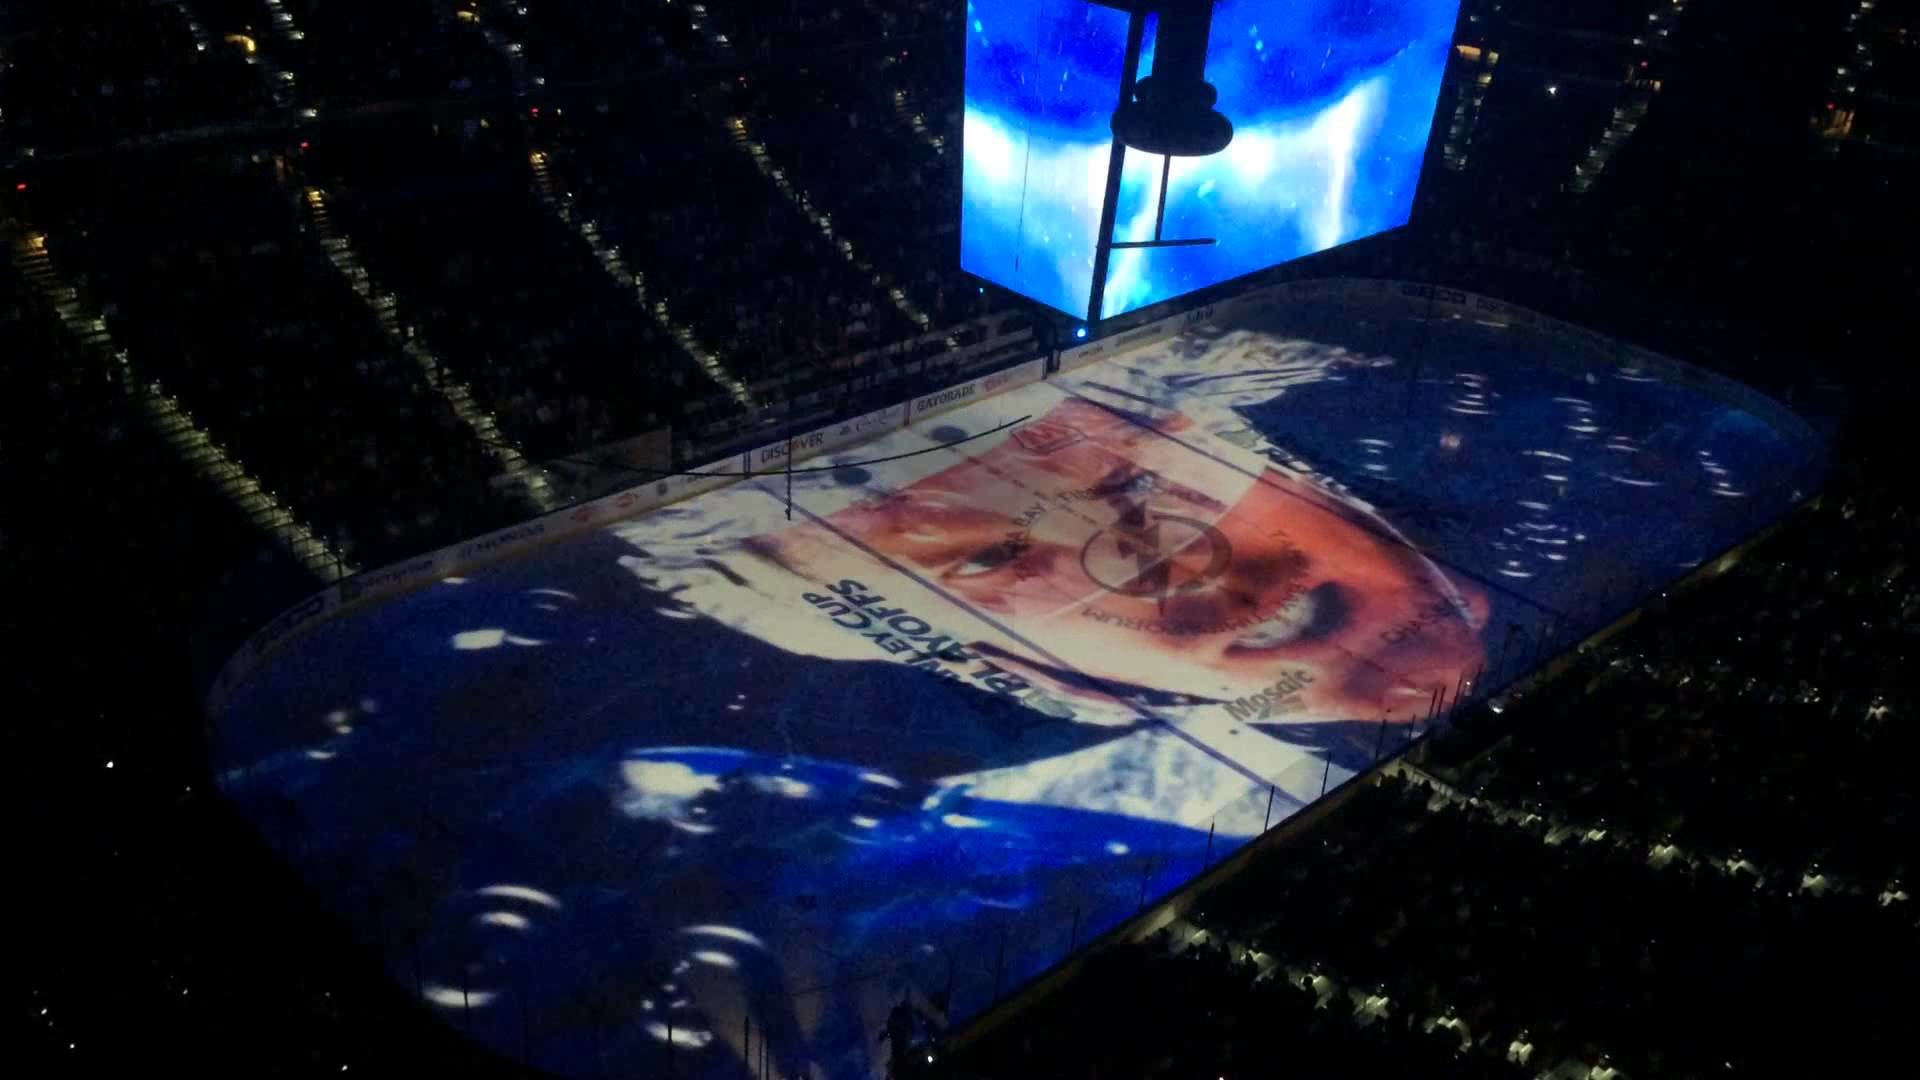 1920x1080 Tampa Bay Lightning Playoff opening ceremony